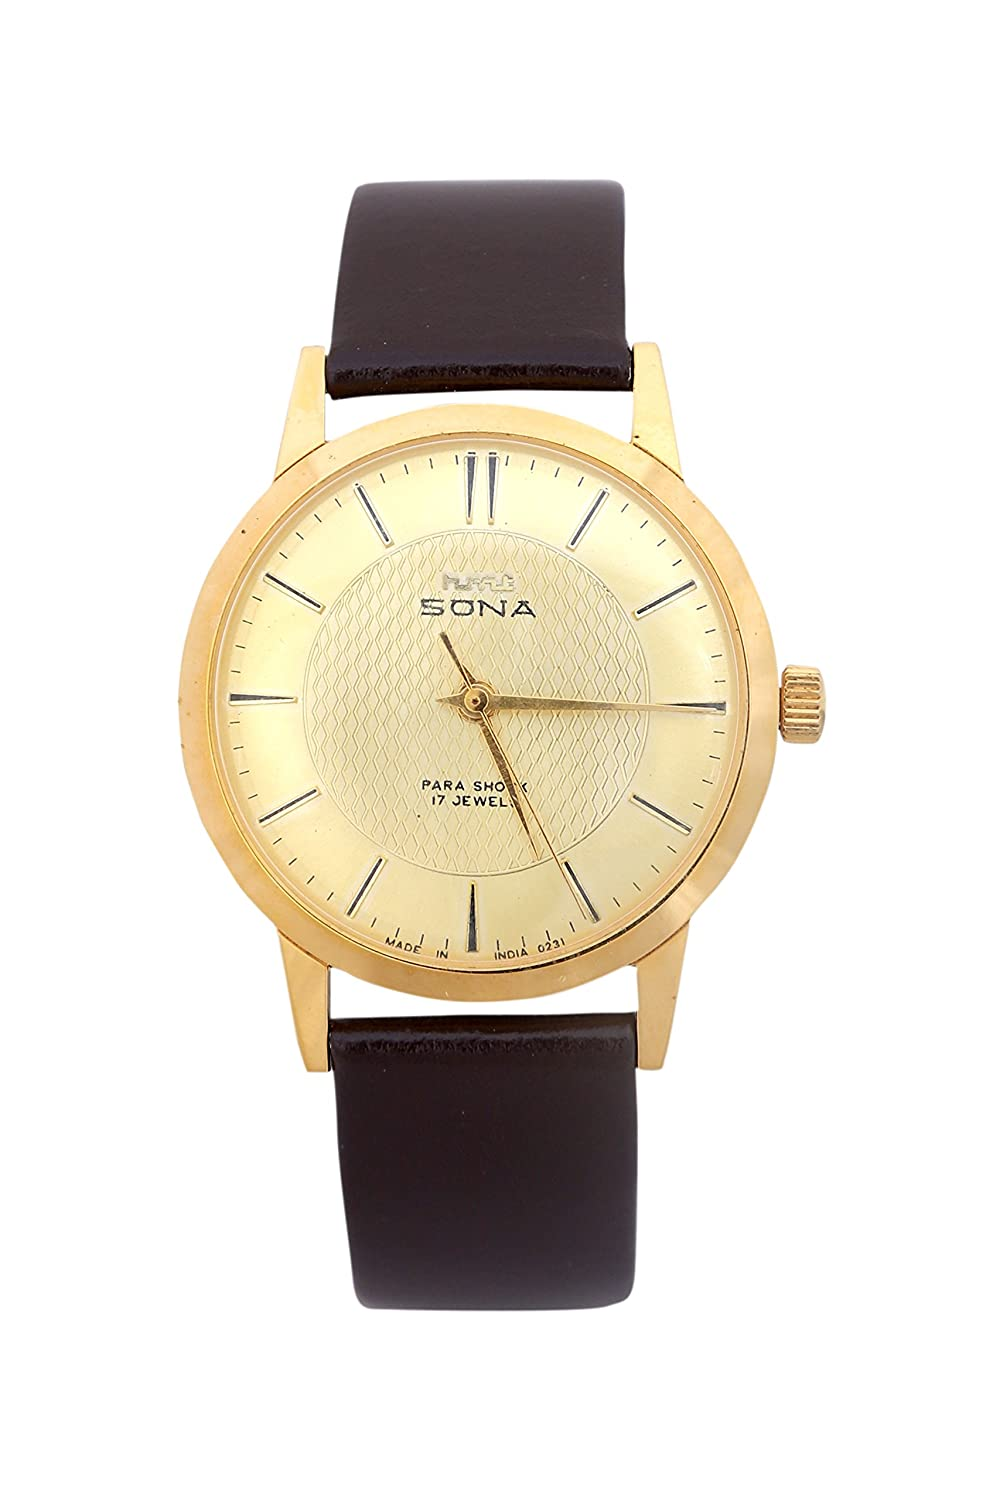 sona champagne men sonata product analog dial watch watches for